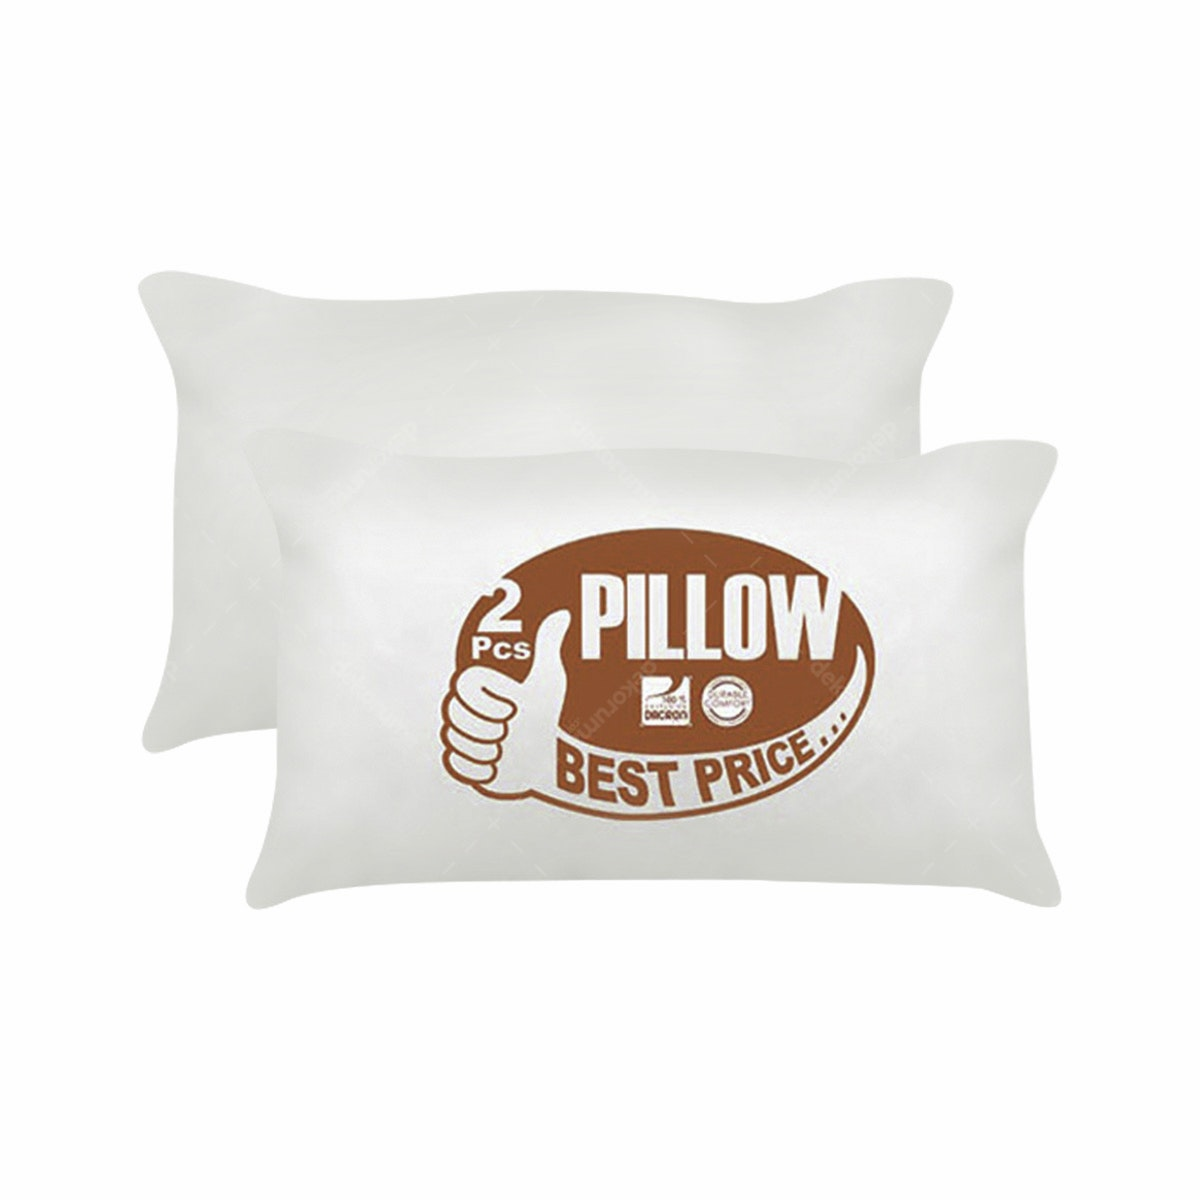 The Luxe The  Luxe Pillow Best Price 2pcs